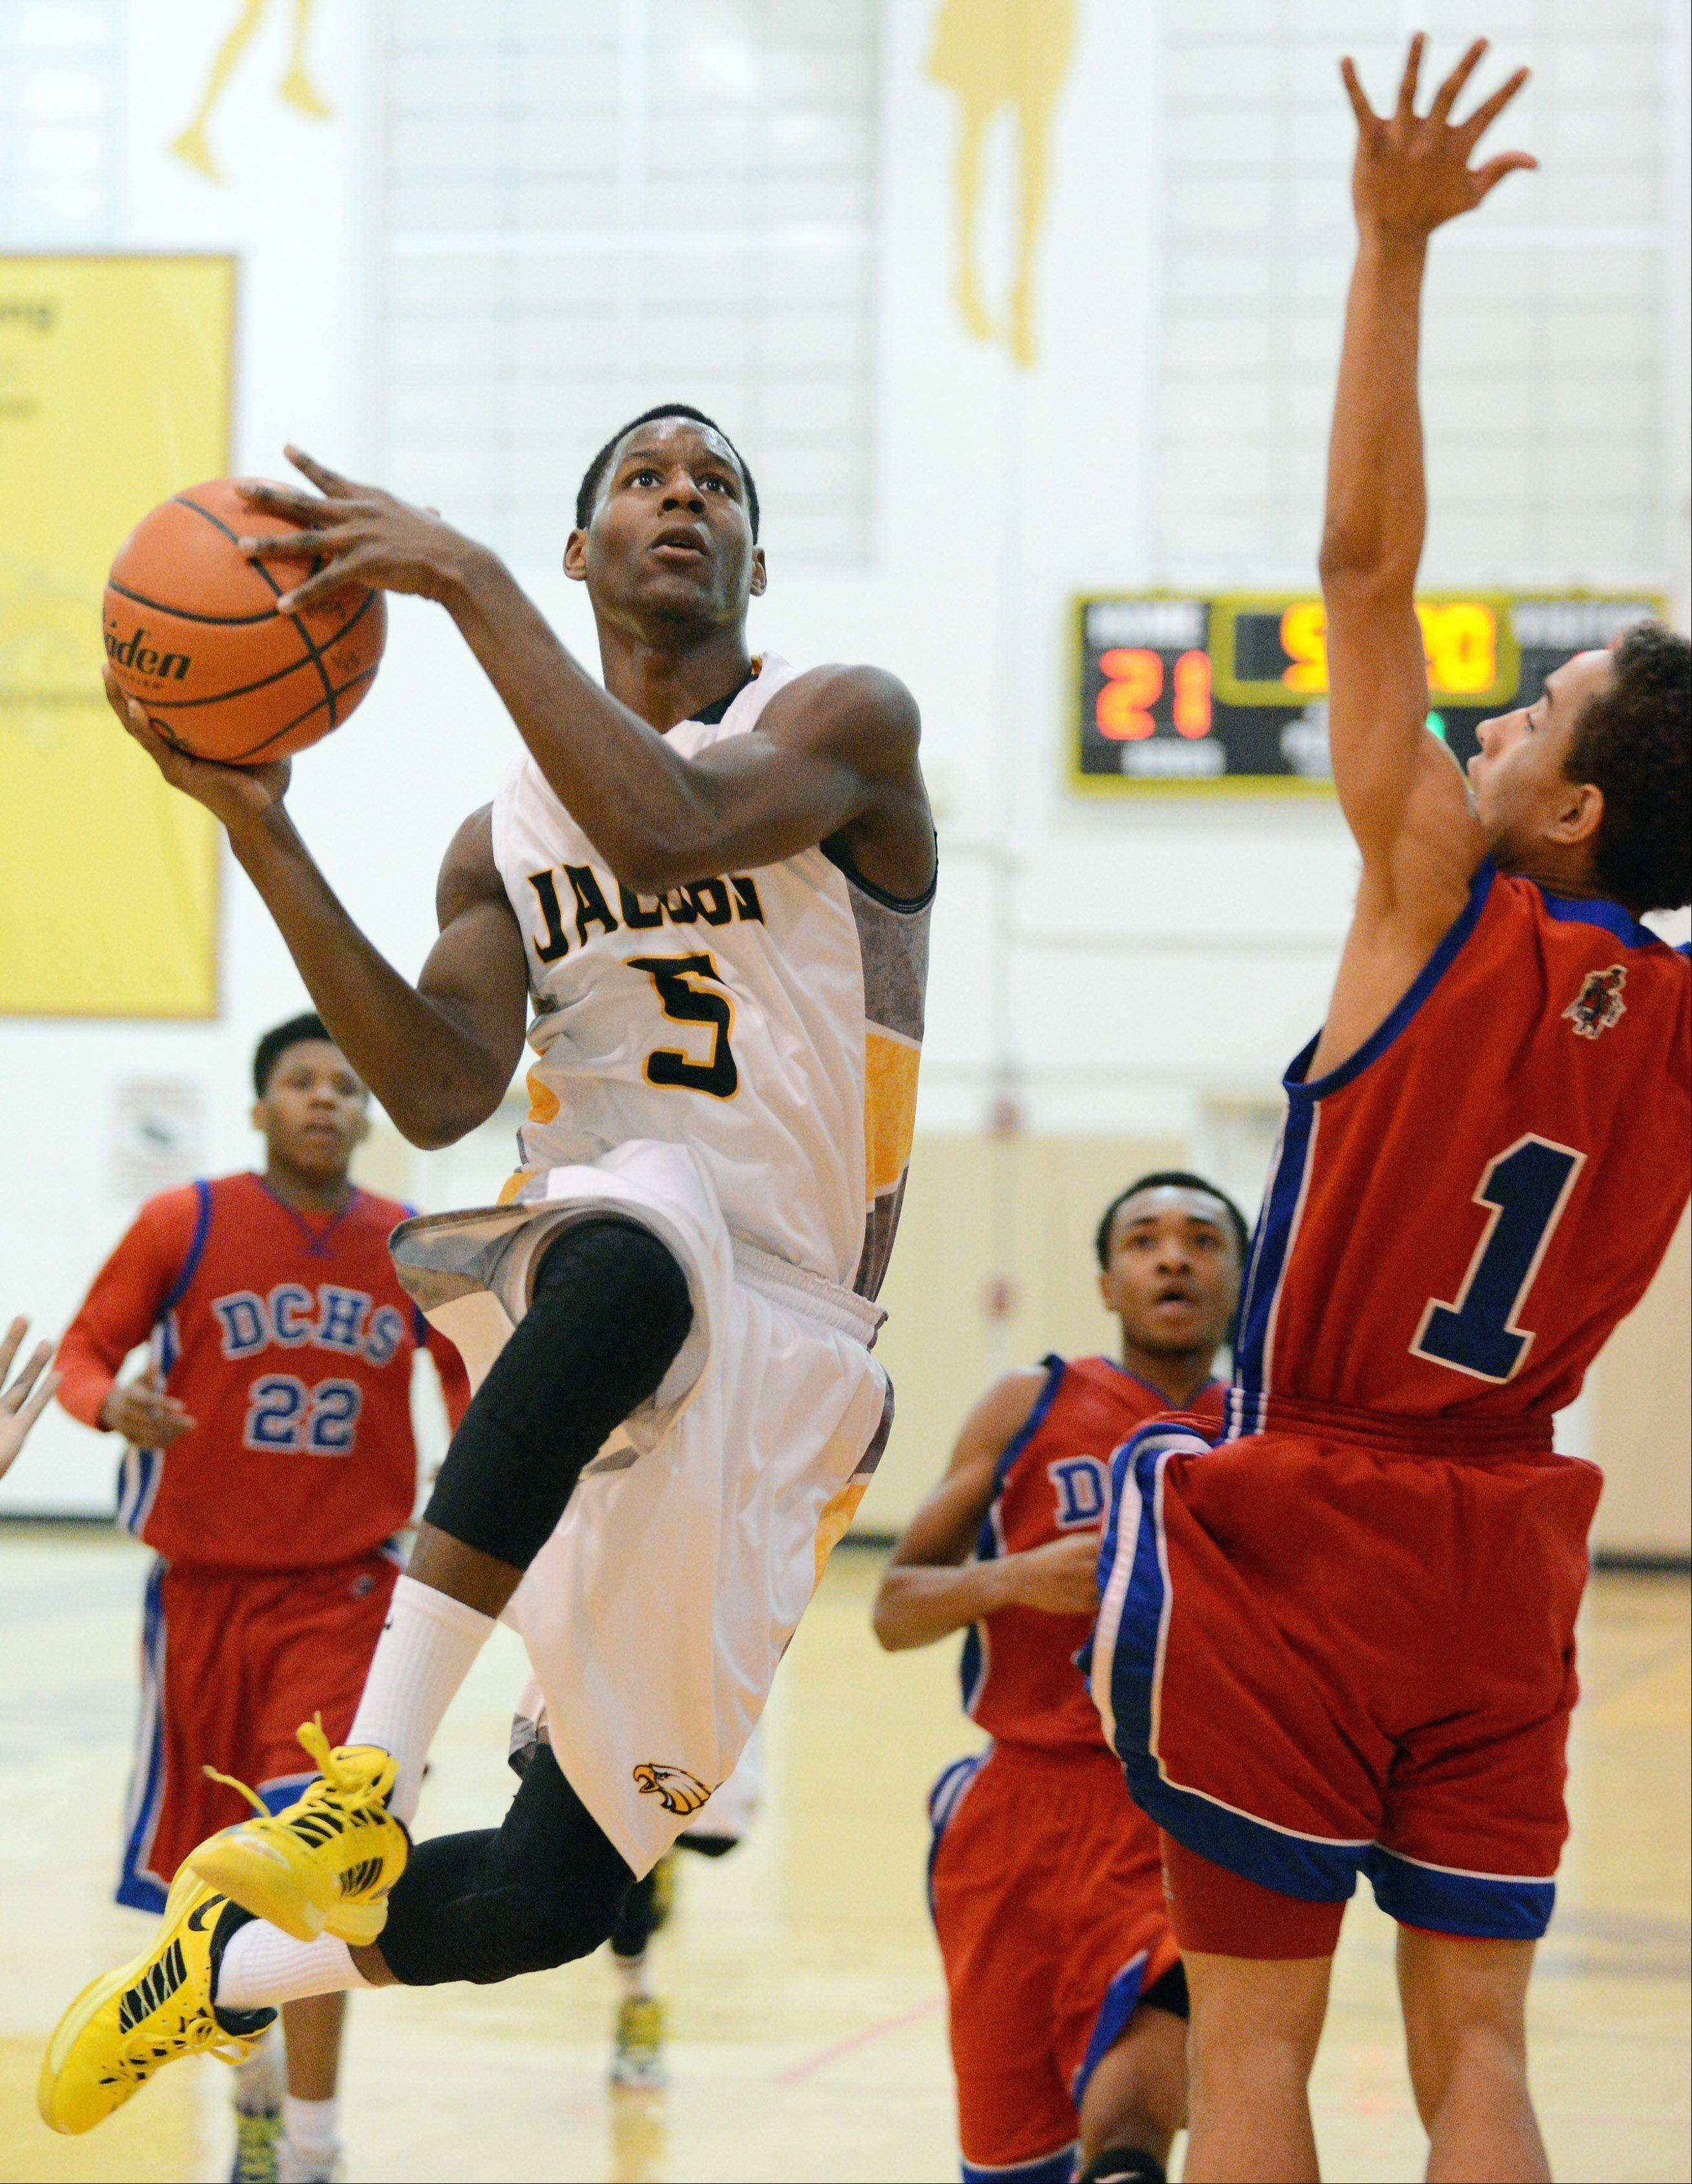 Chris Orange of Jacobs drives to the basket for two points against Dundee-Crown during Wednesday's game in Algonquin.